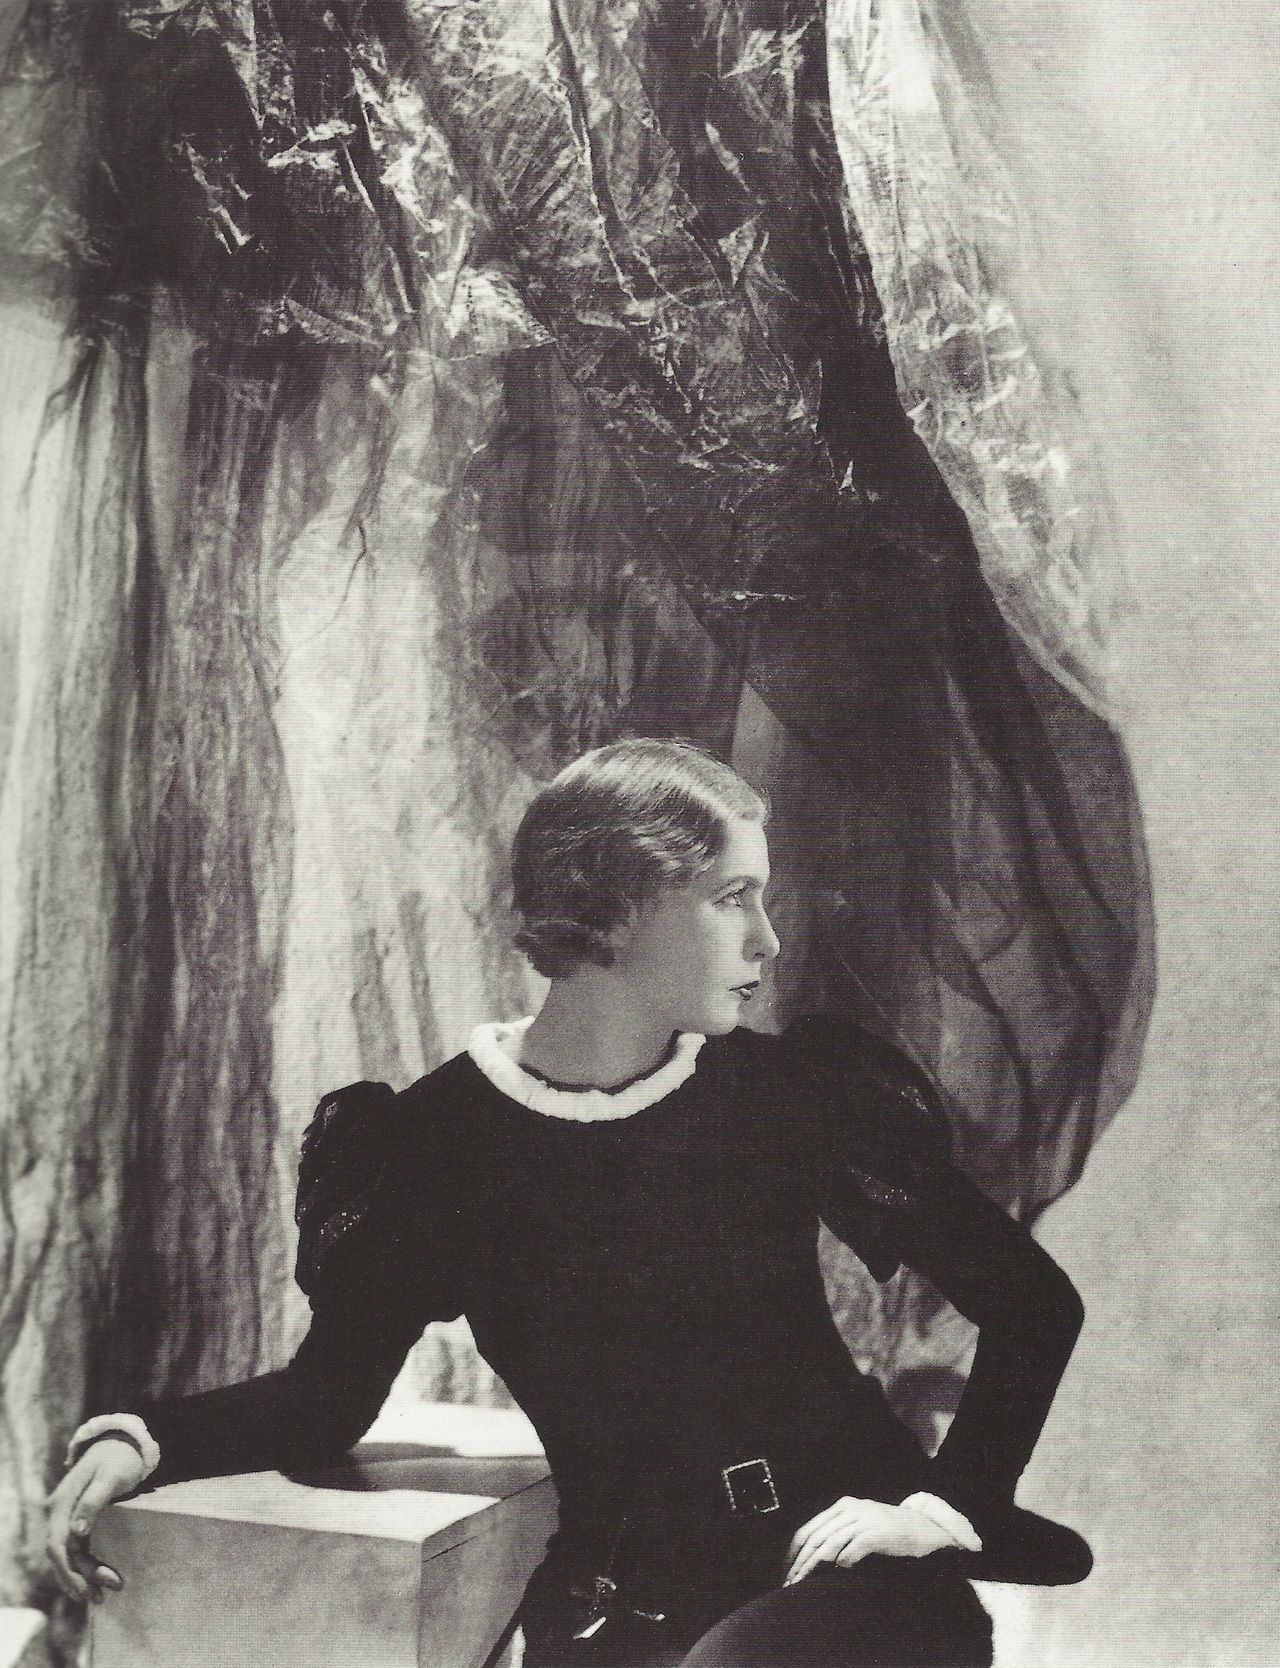 Lady Abdy as Hamlet by Cecil Beaton, 1929. Image via Pinterest.